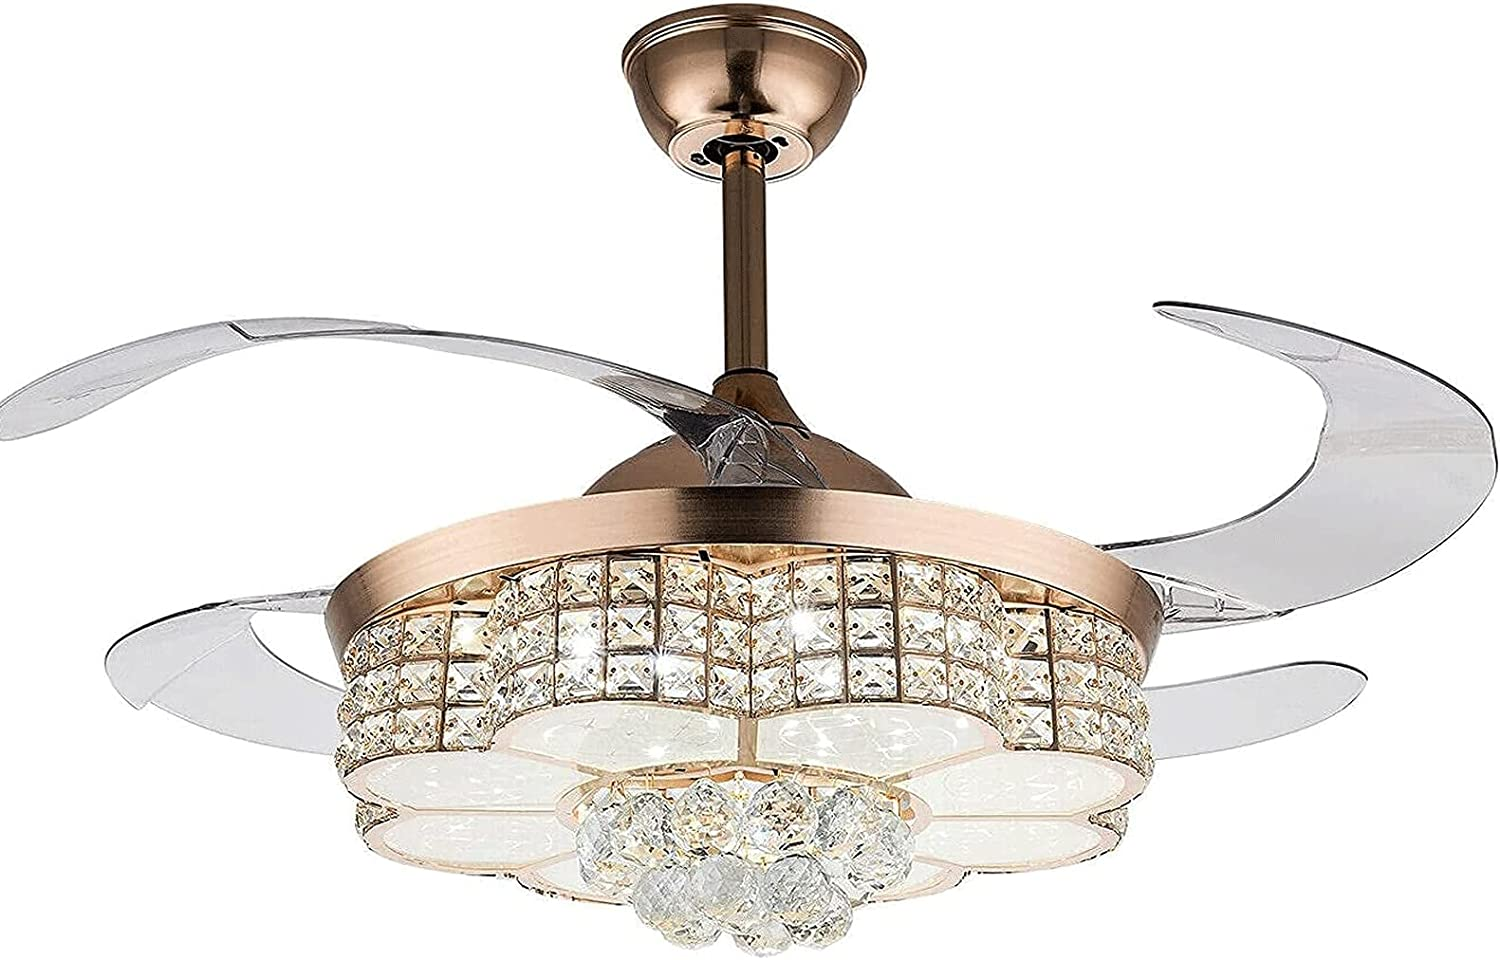 WERCHW Crystal Ceiling Popular product Fans ,with Blades Max 63% OFF Lights Retractable Fa